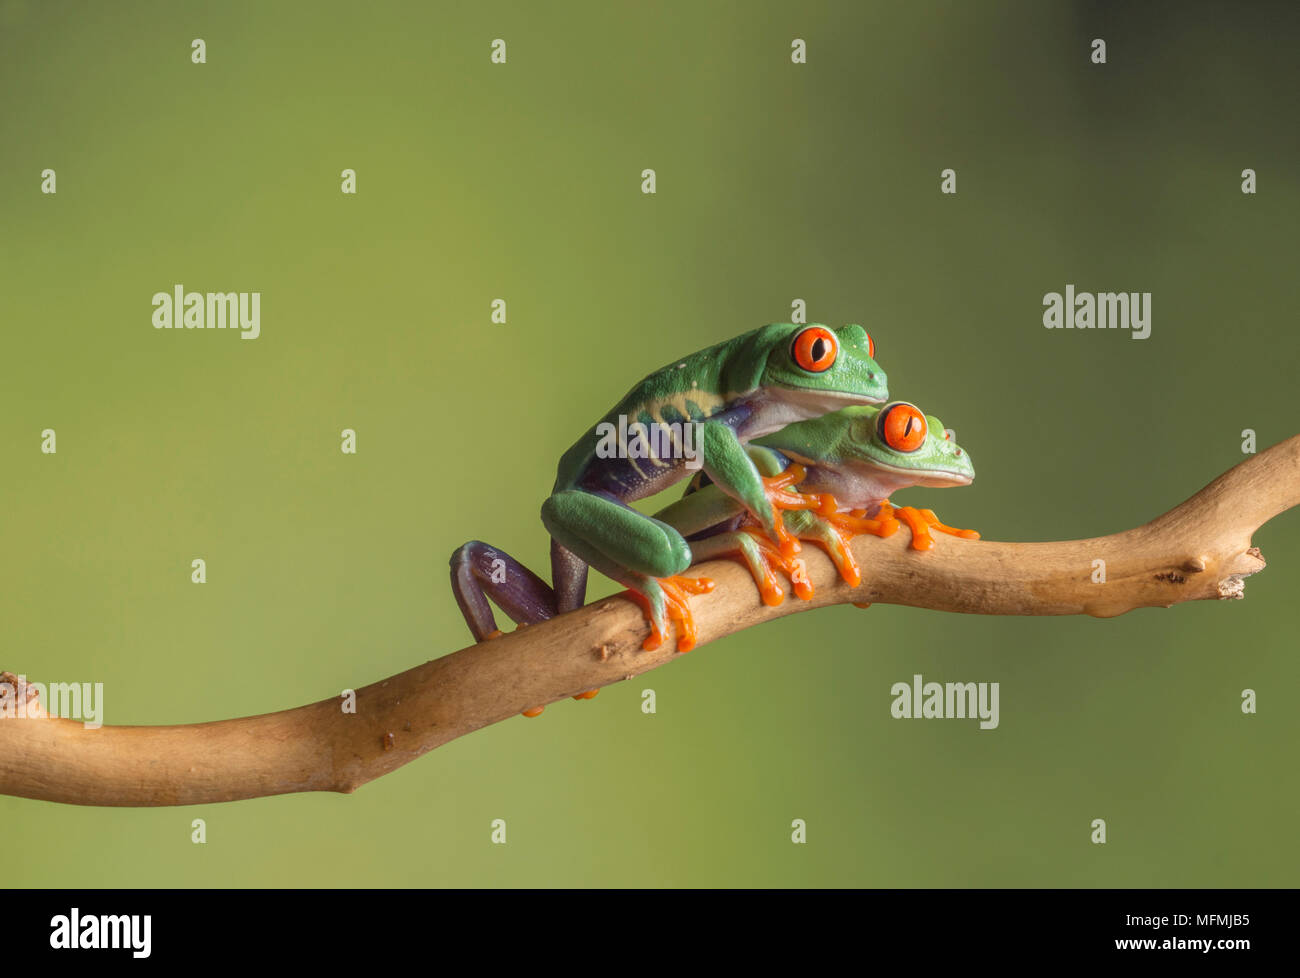 Red eyed tree frogs in a  tudio setting - Stock Image